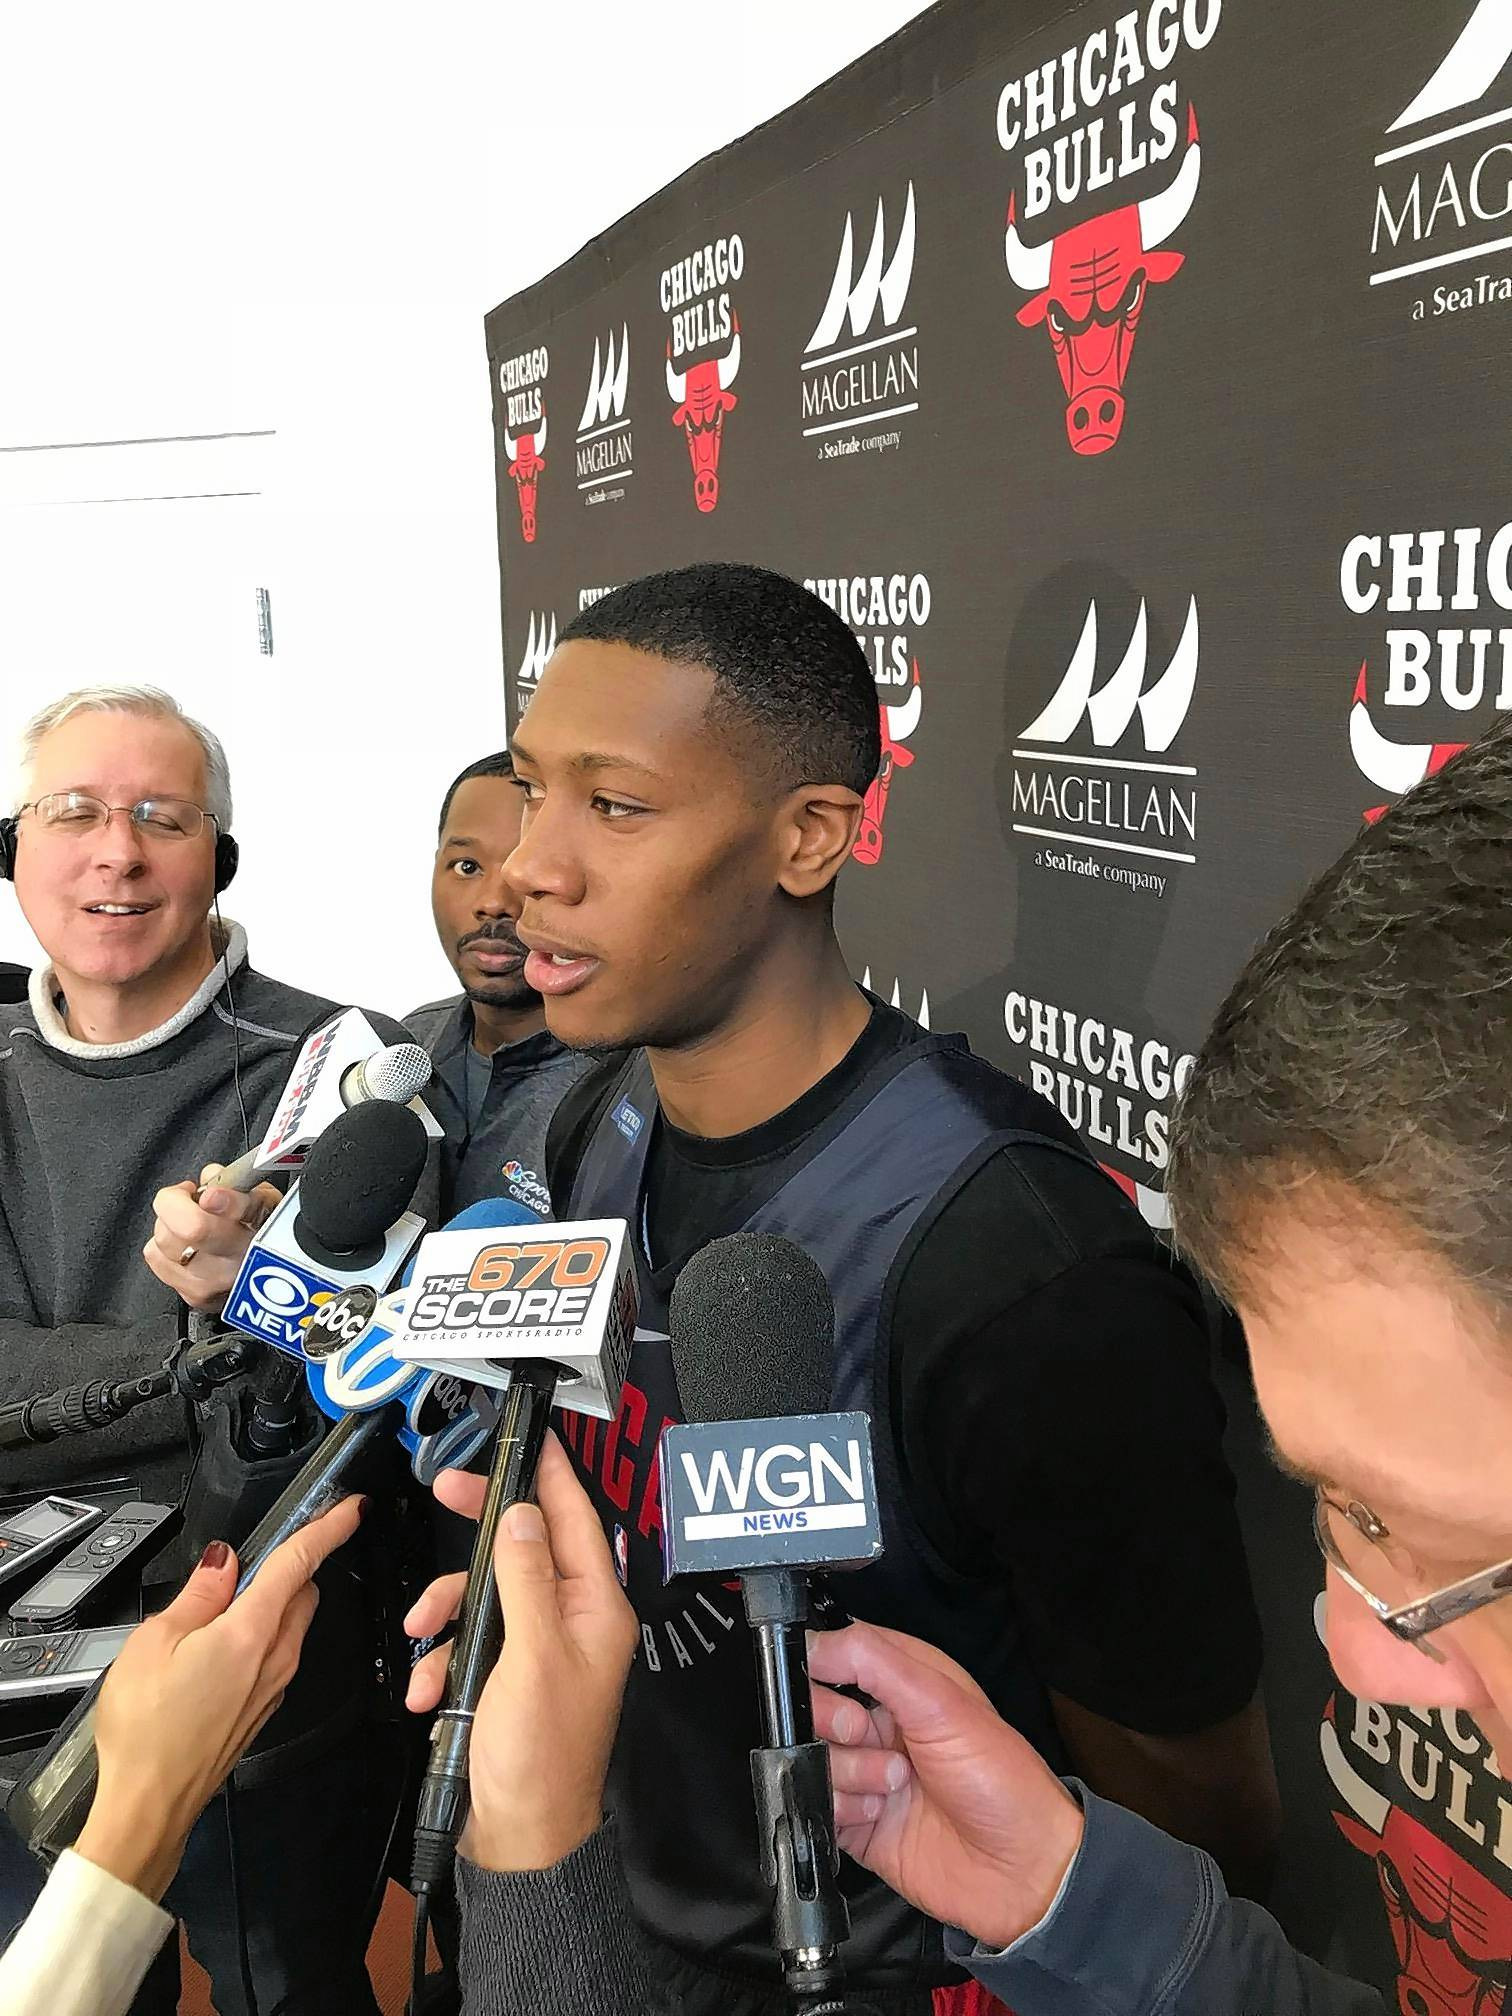 Chicago Bulls guard Kris Dunn tells reporters he hopes to return to game action soon. Dunn, who has been out with a concussion, practiced with the Windy City Bulls on Wednesday,